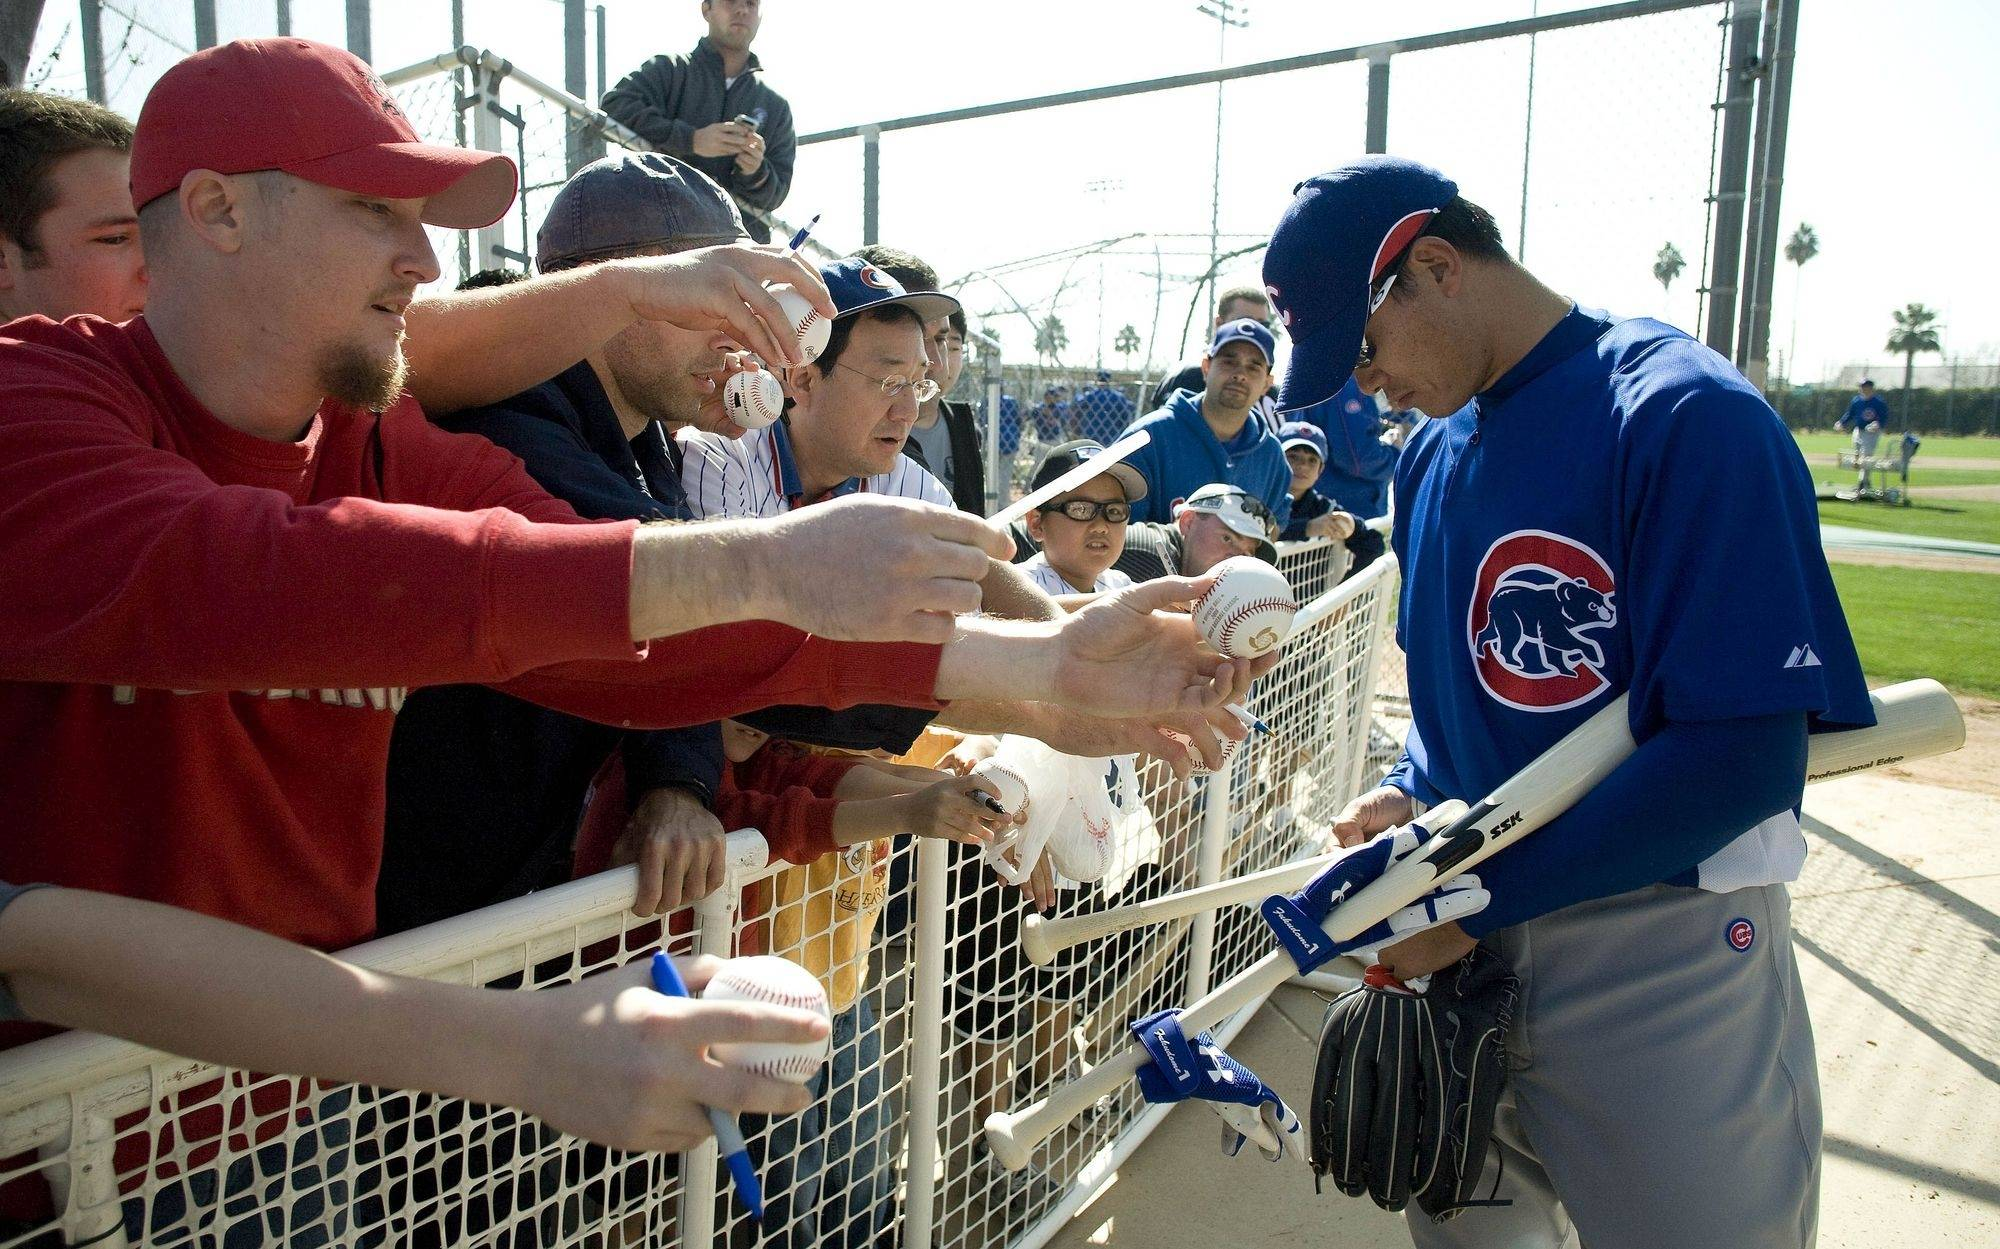 Officials in Mesa say they are prepared to approve a new stadium site on Monday to keep the Chicago Cubs in Arizona for spring training. Nothing has been finalized, but several reports say the Cubs won't be moving to Florida.